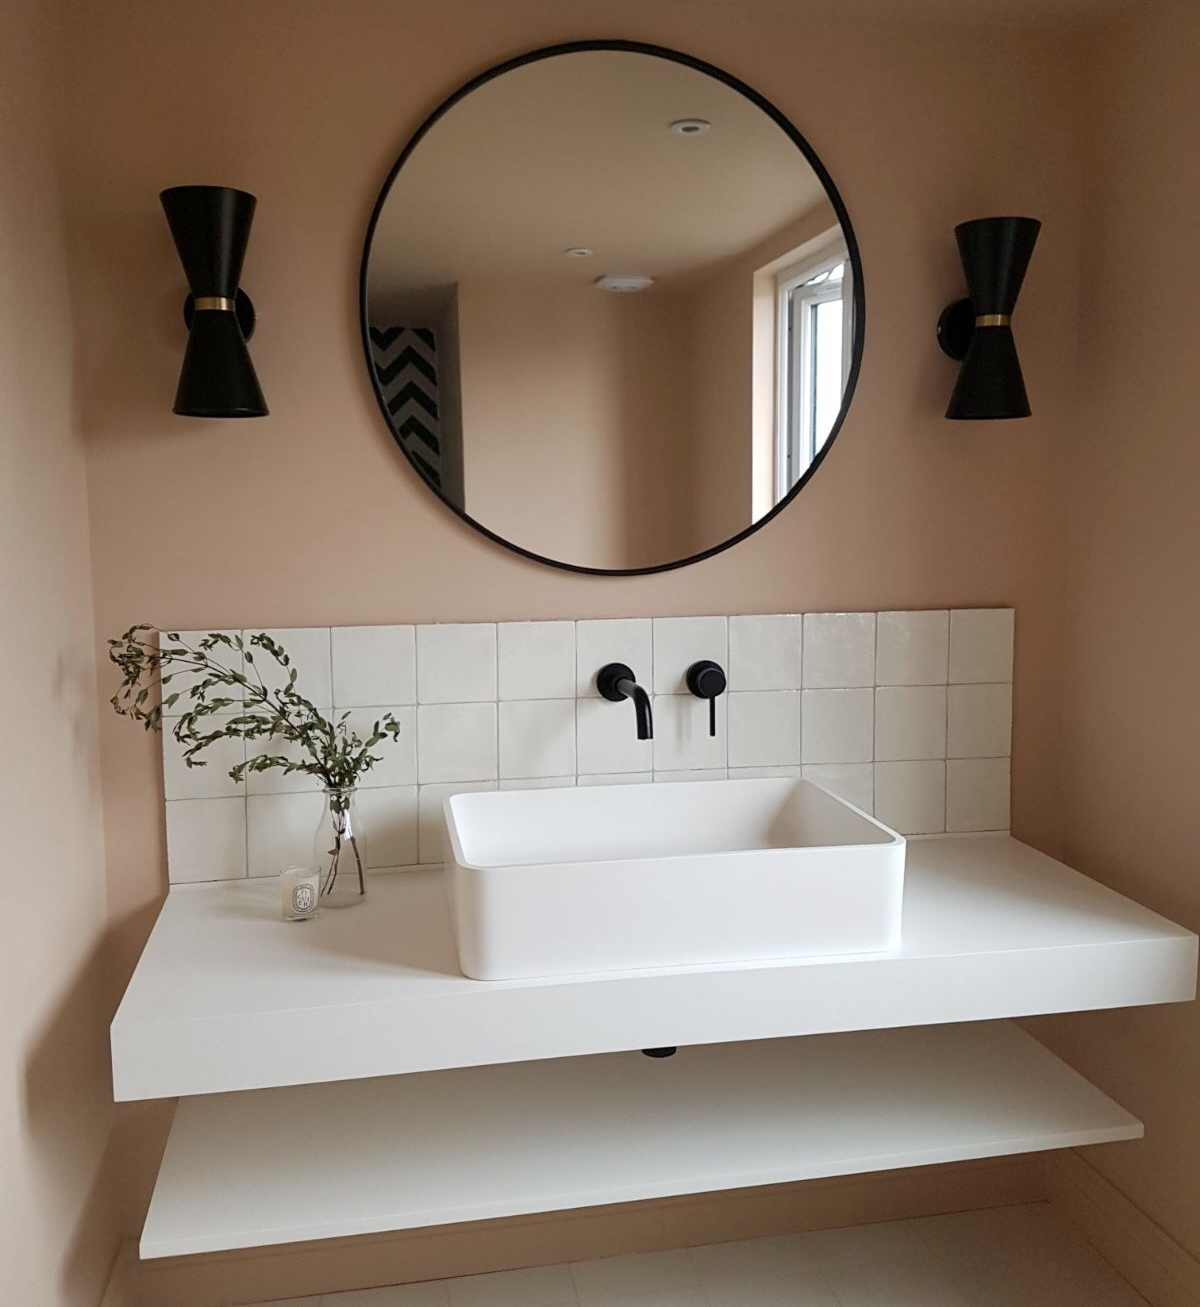 Lighting - Made.com  Ogilvy  wall light  Mirror -  Maison Du Monde    Taps, sink and sink shelves, all from  Lusso Stone   Tiles -  Bert and May  (glazed terracotta tiles)